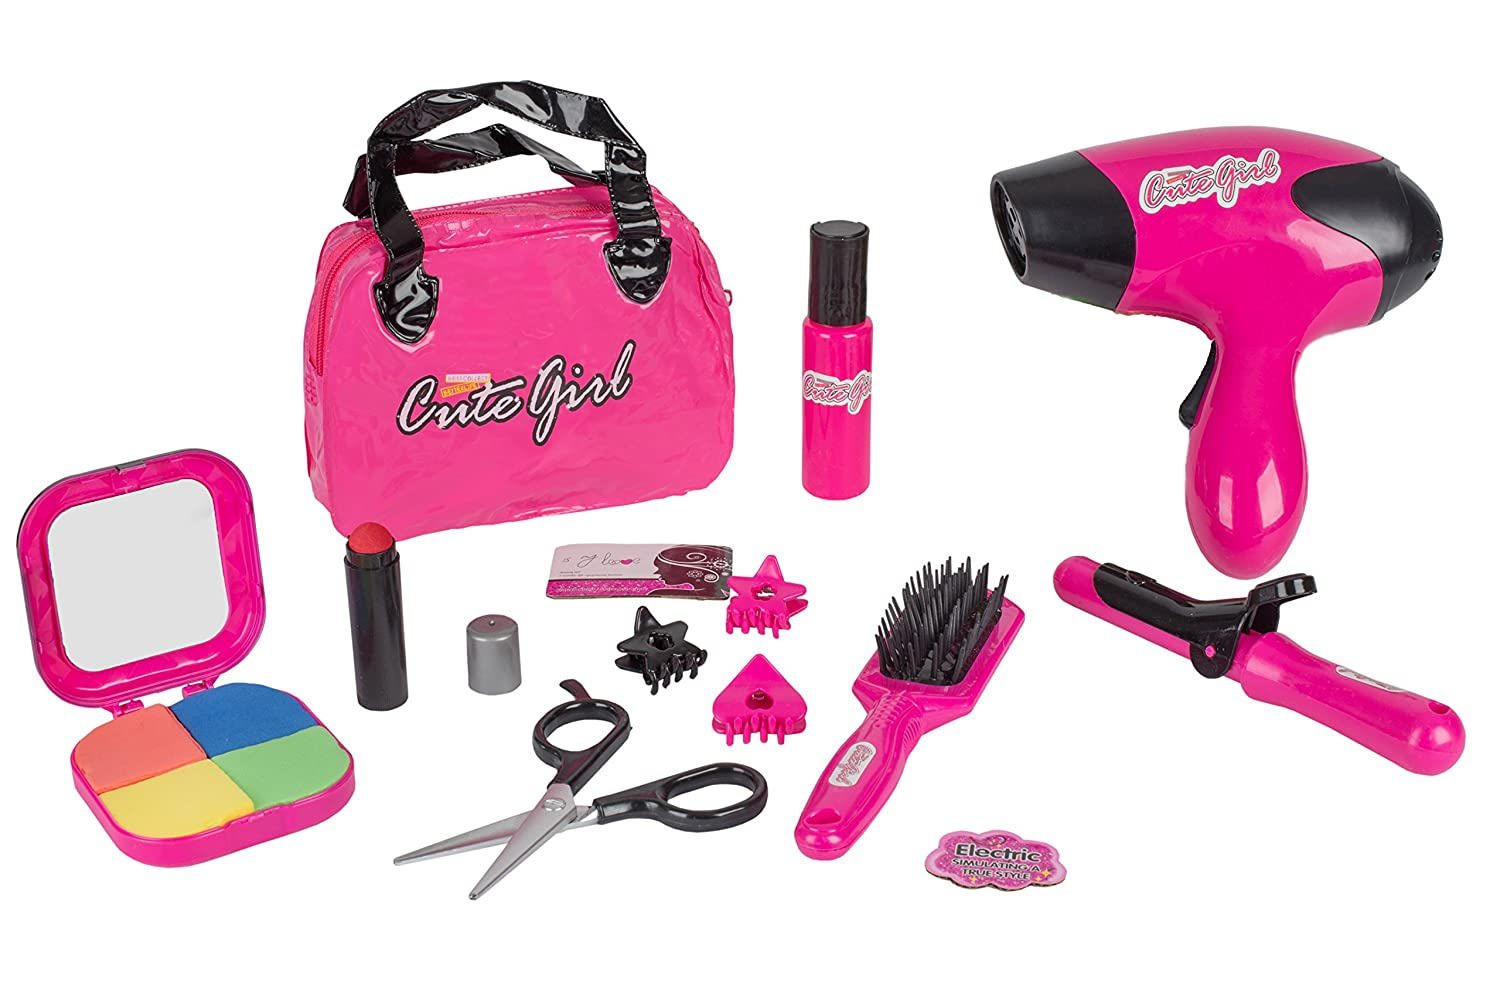 Toy Hair Salon : Beauty salon play set makeup kids girl hairdryer curling